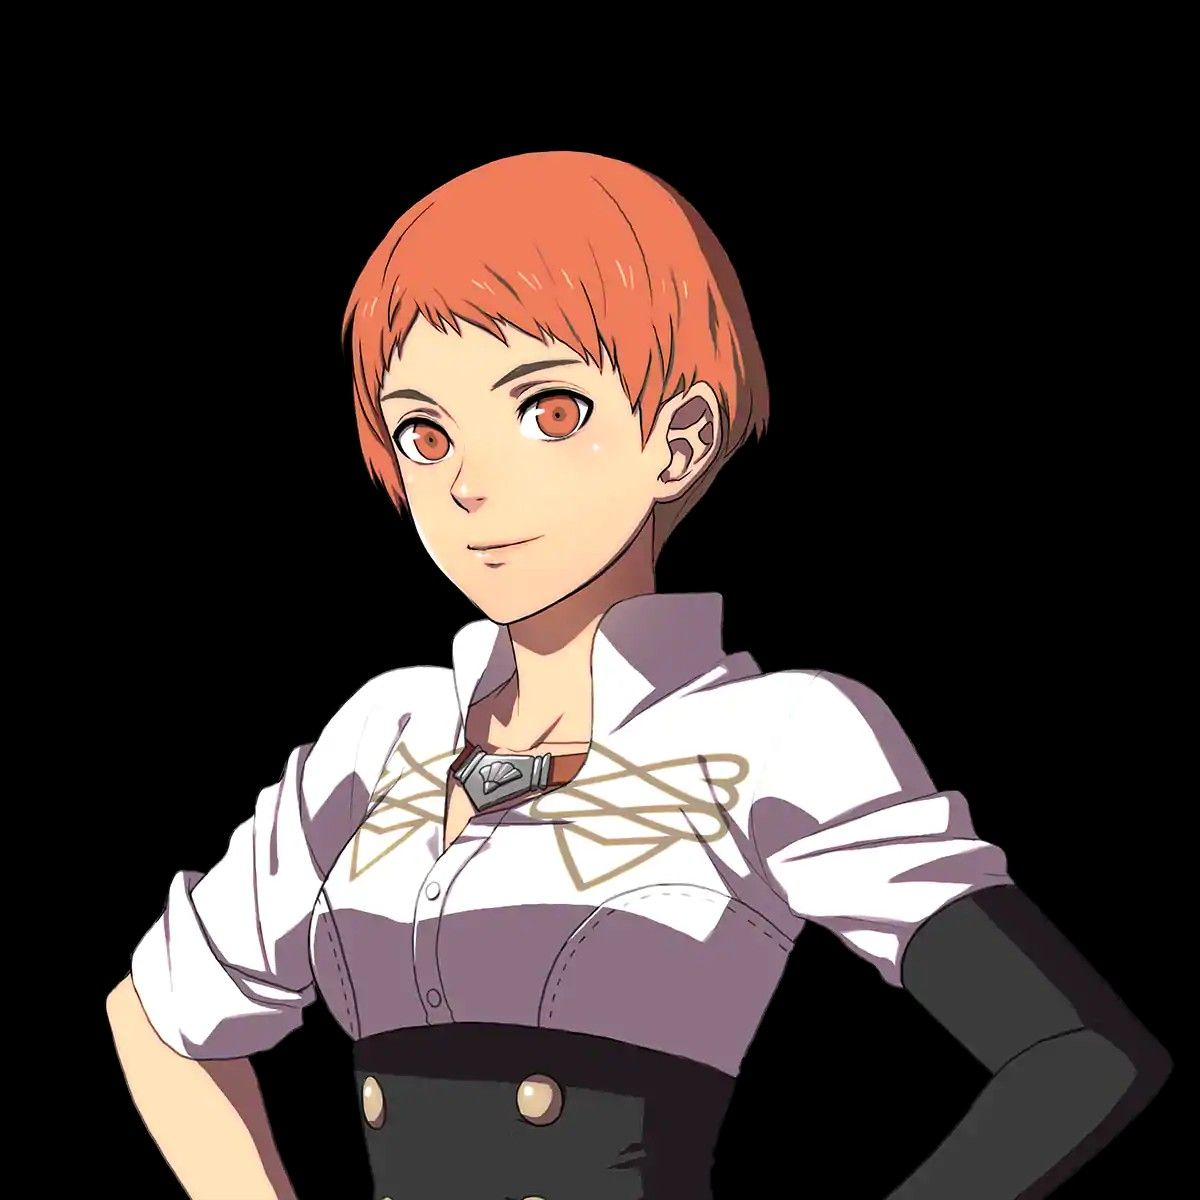 Leonie Fire Emblem Three Houses Fire Emblem Characters Fire Emblem Combat Art Three houses is out now on nintendo switch, and it boasts one of the largest rosters of any fire emblem game, complete with full voice acting to boot. pinterest